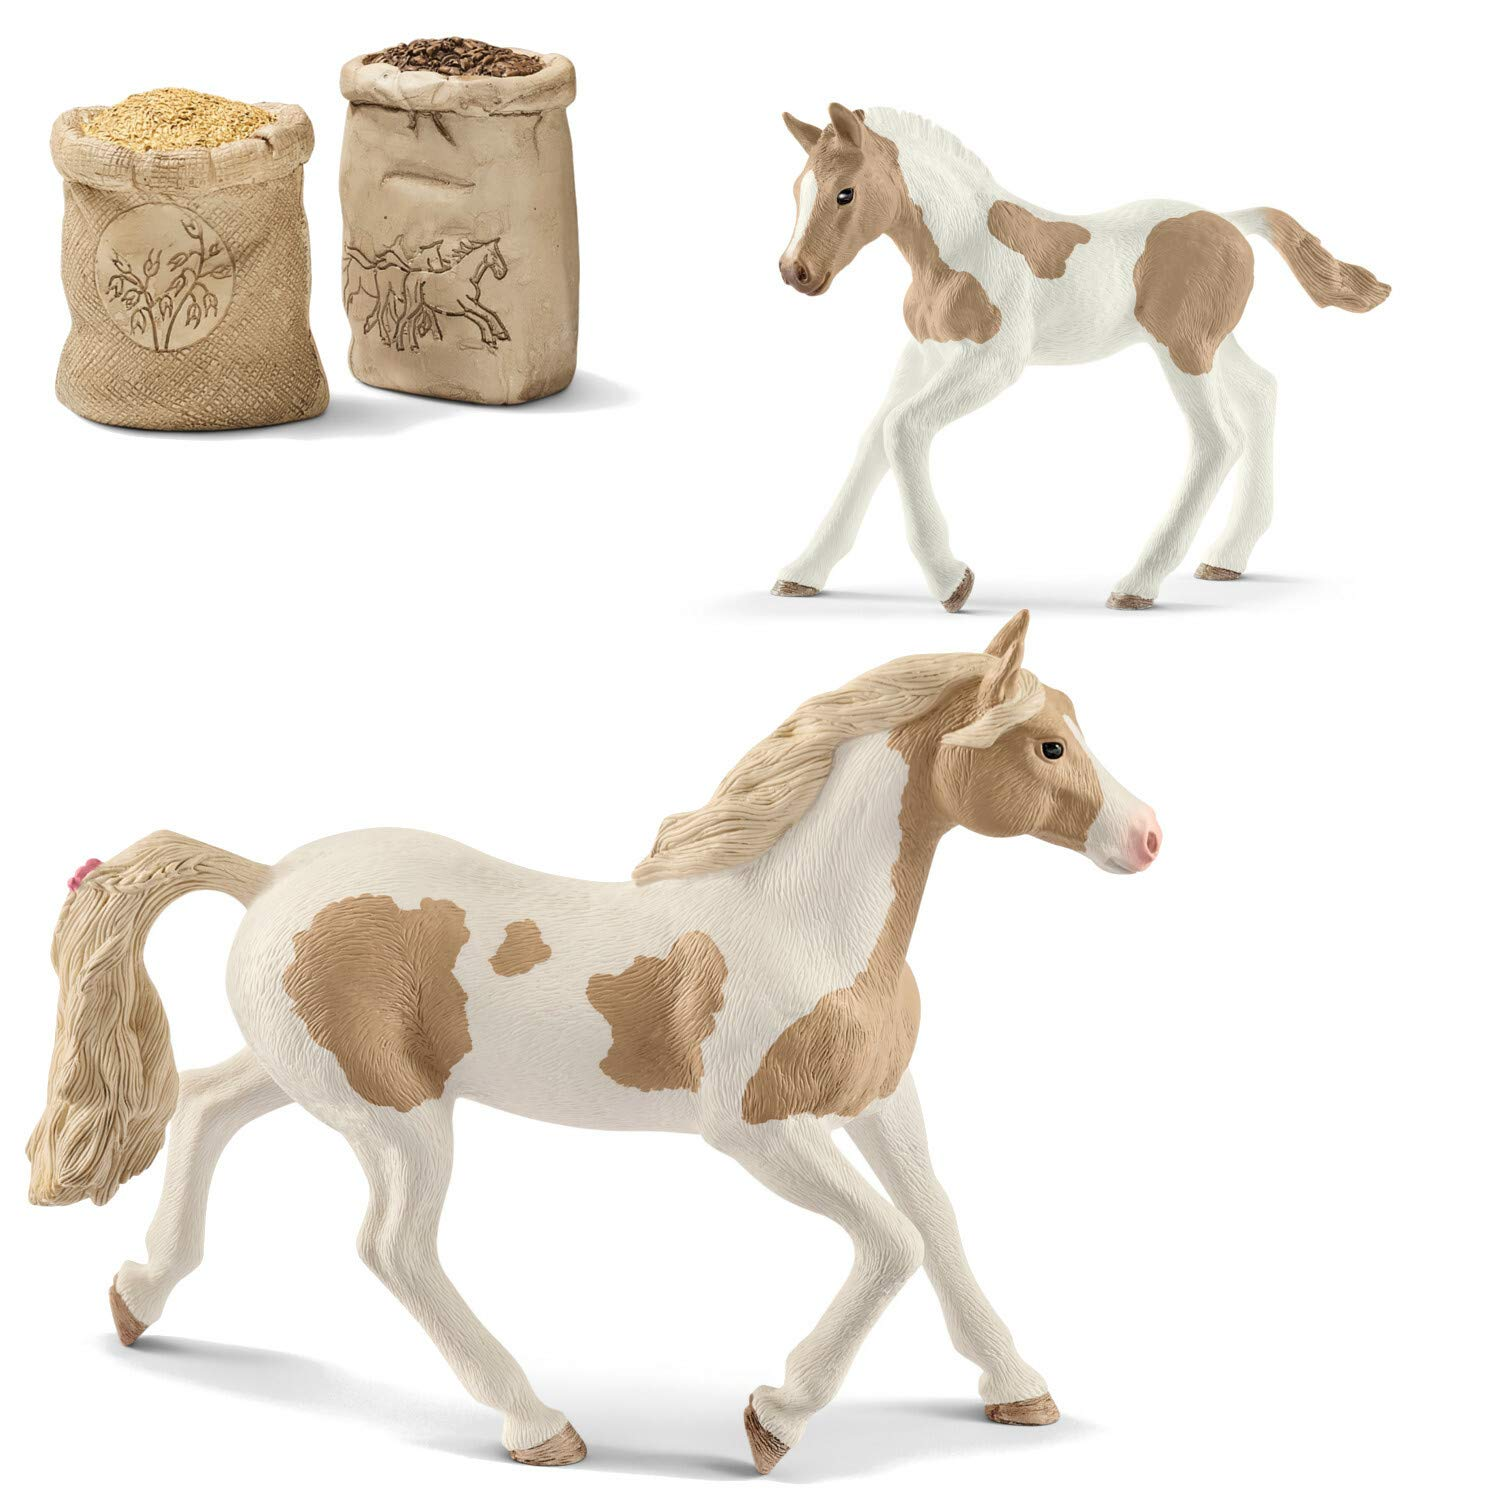 Schleich-Farm World-Paint Horse Jument 13884